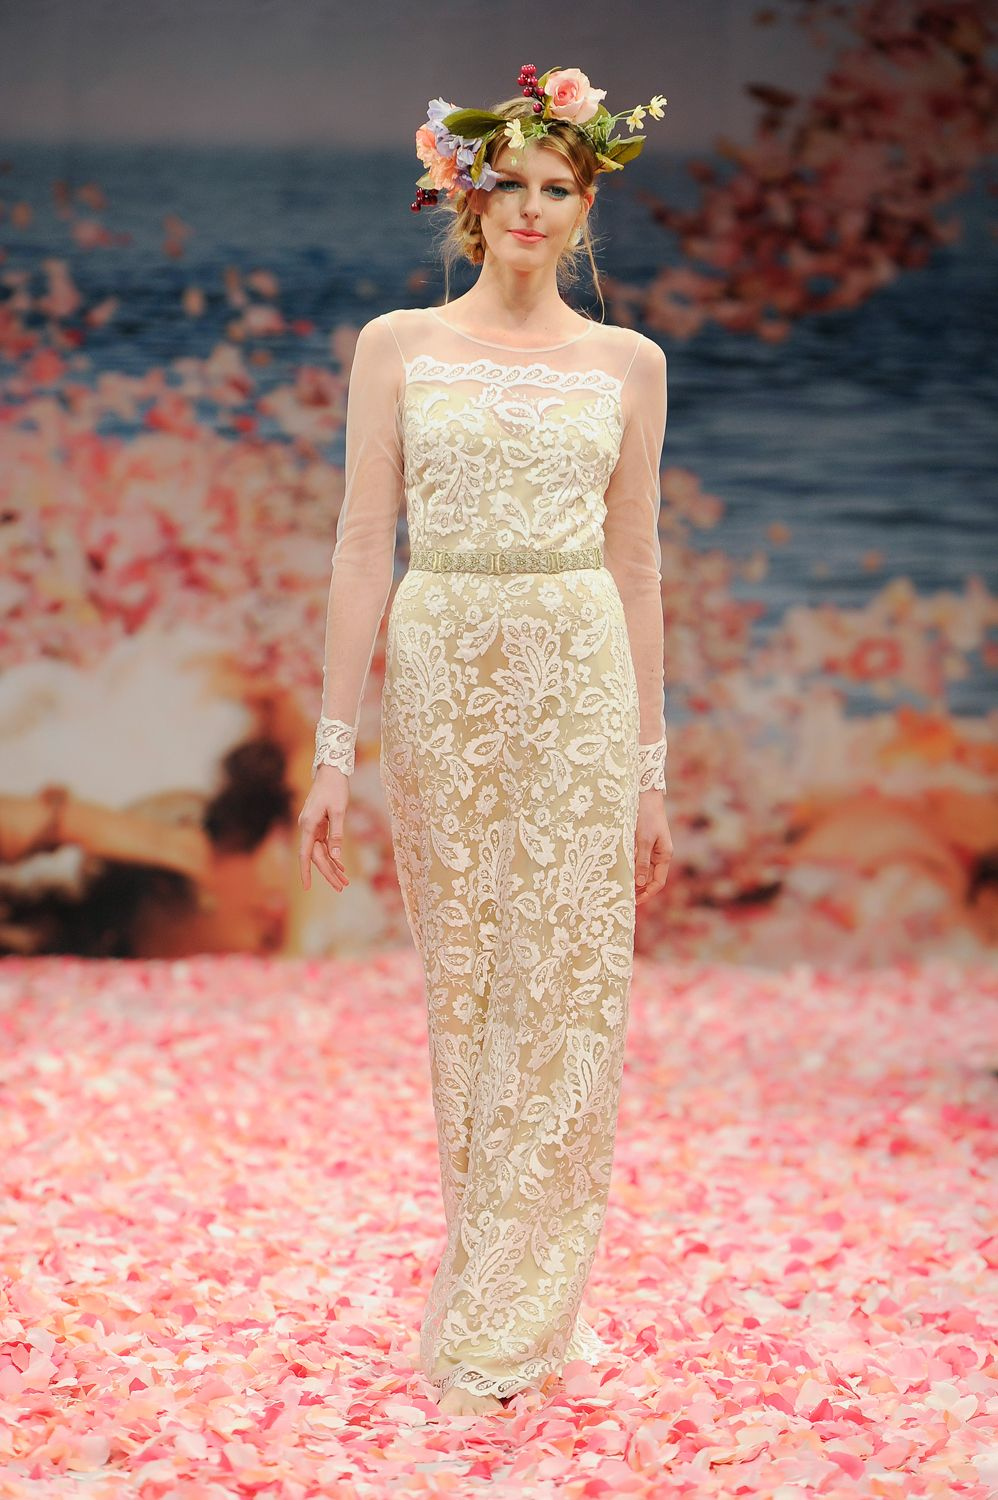 Ivory silk and lace wedding dress  Claire Pettibone  Couture Bridal l Wedding Dresses Bridal Gowns